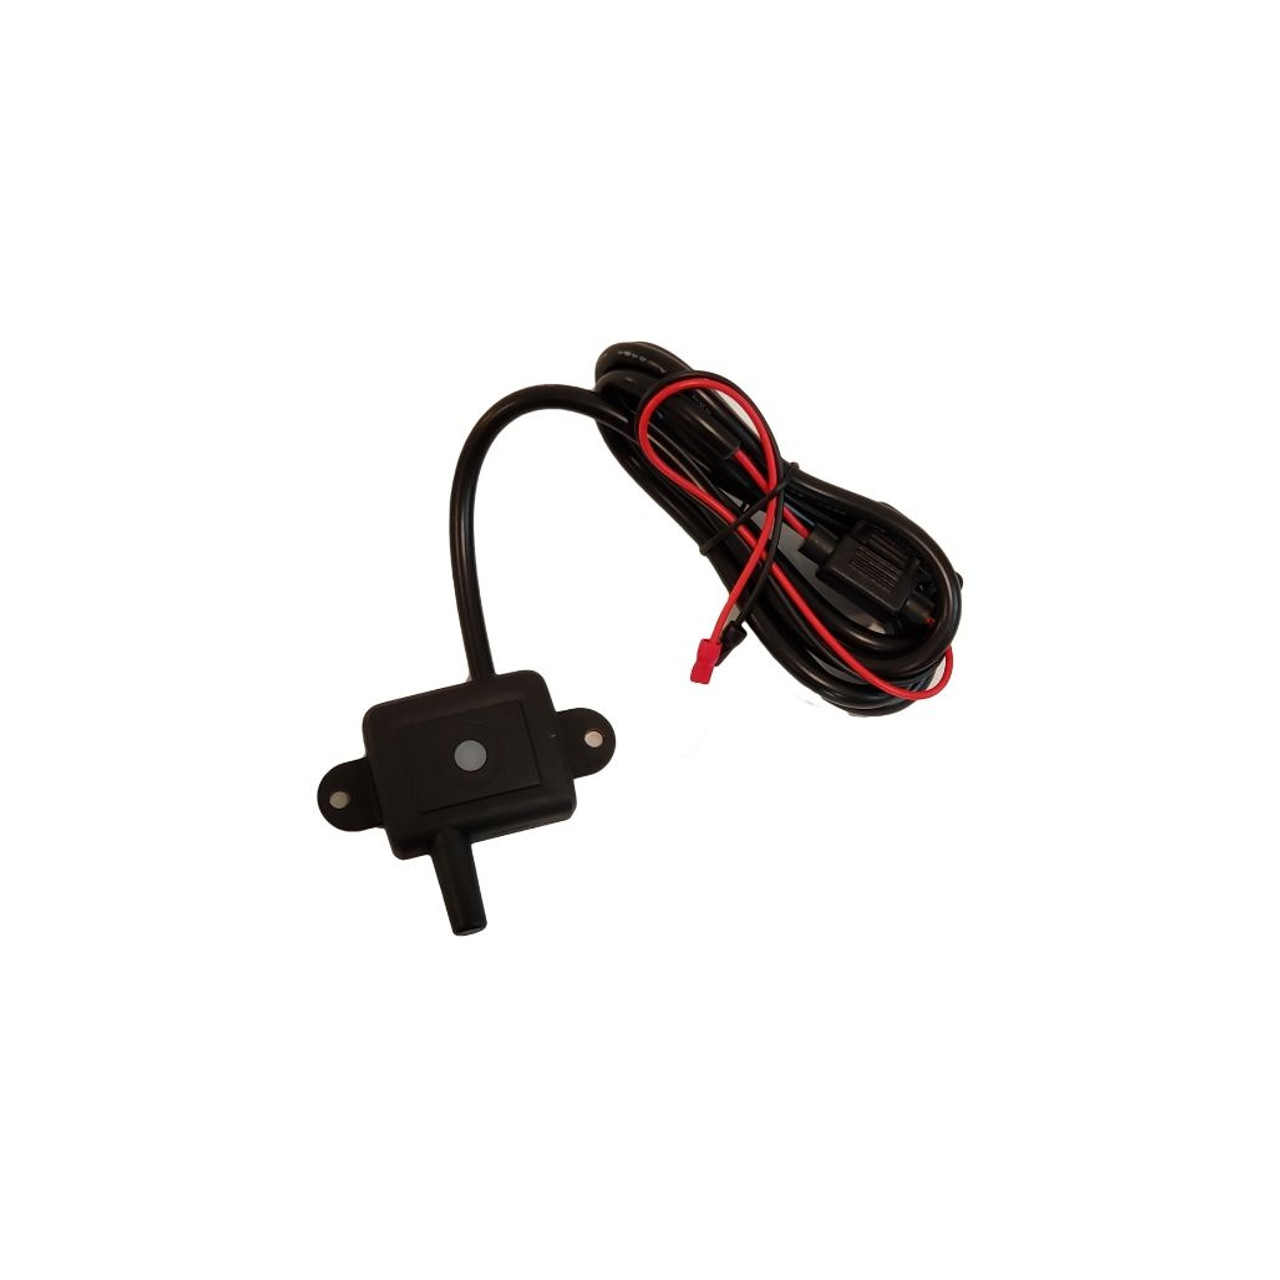 TST 507 TPMS with FLOW THRU Sensors (04) and Repeater